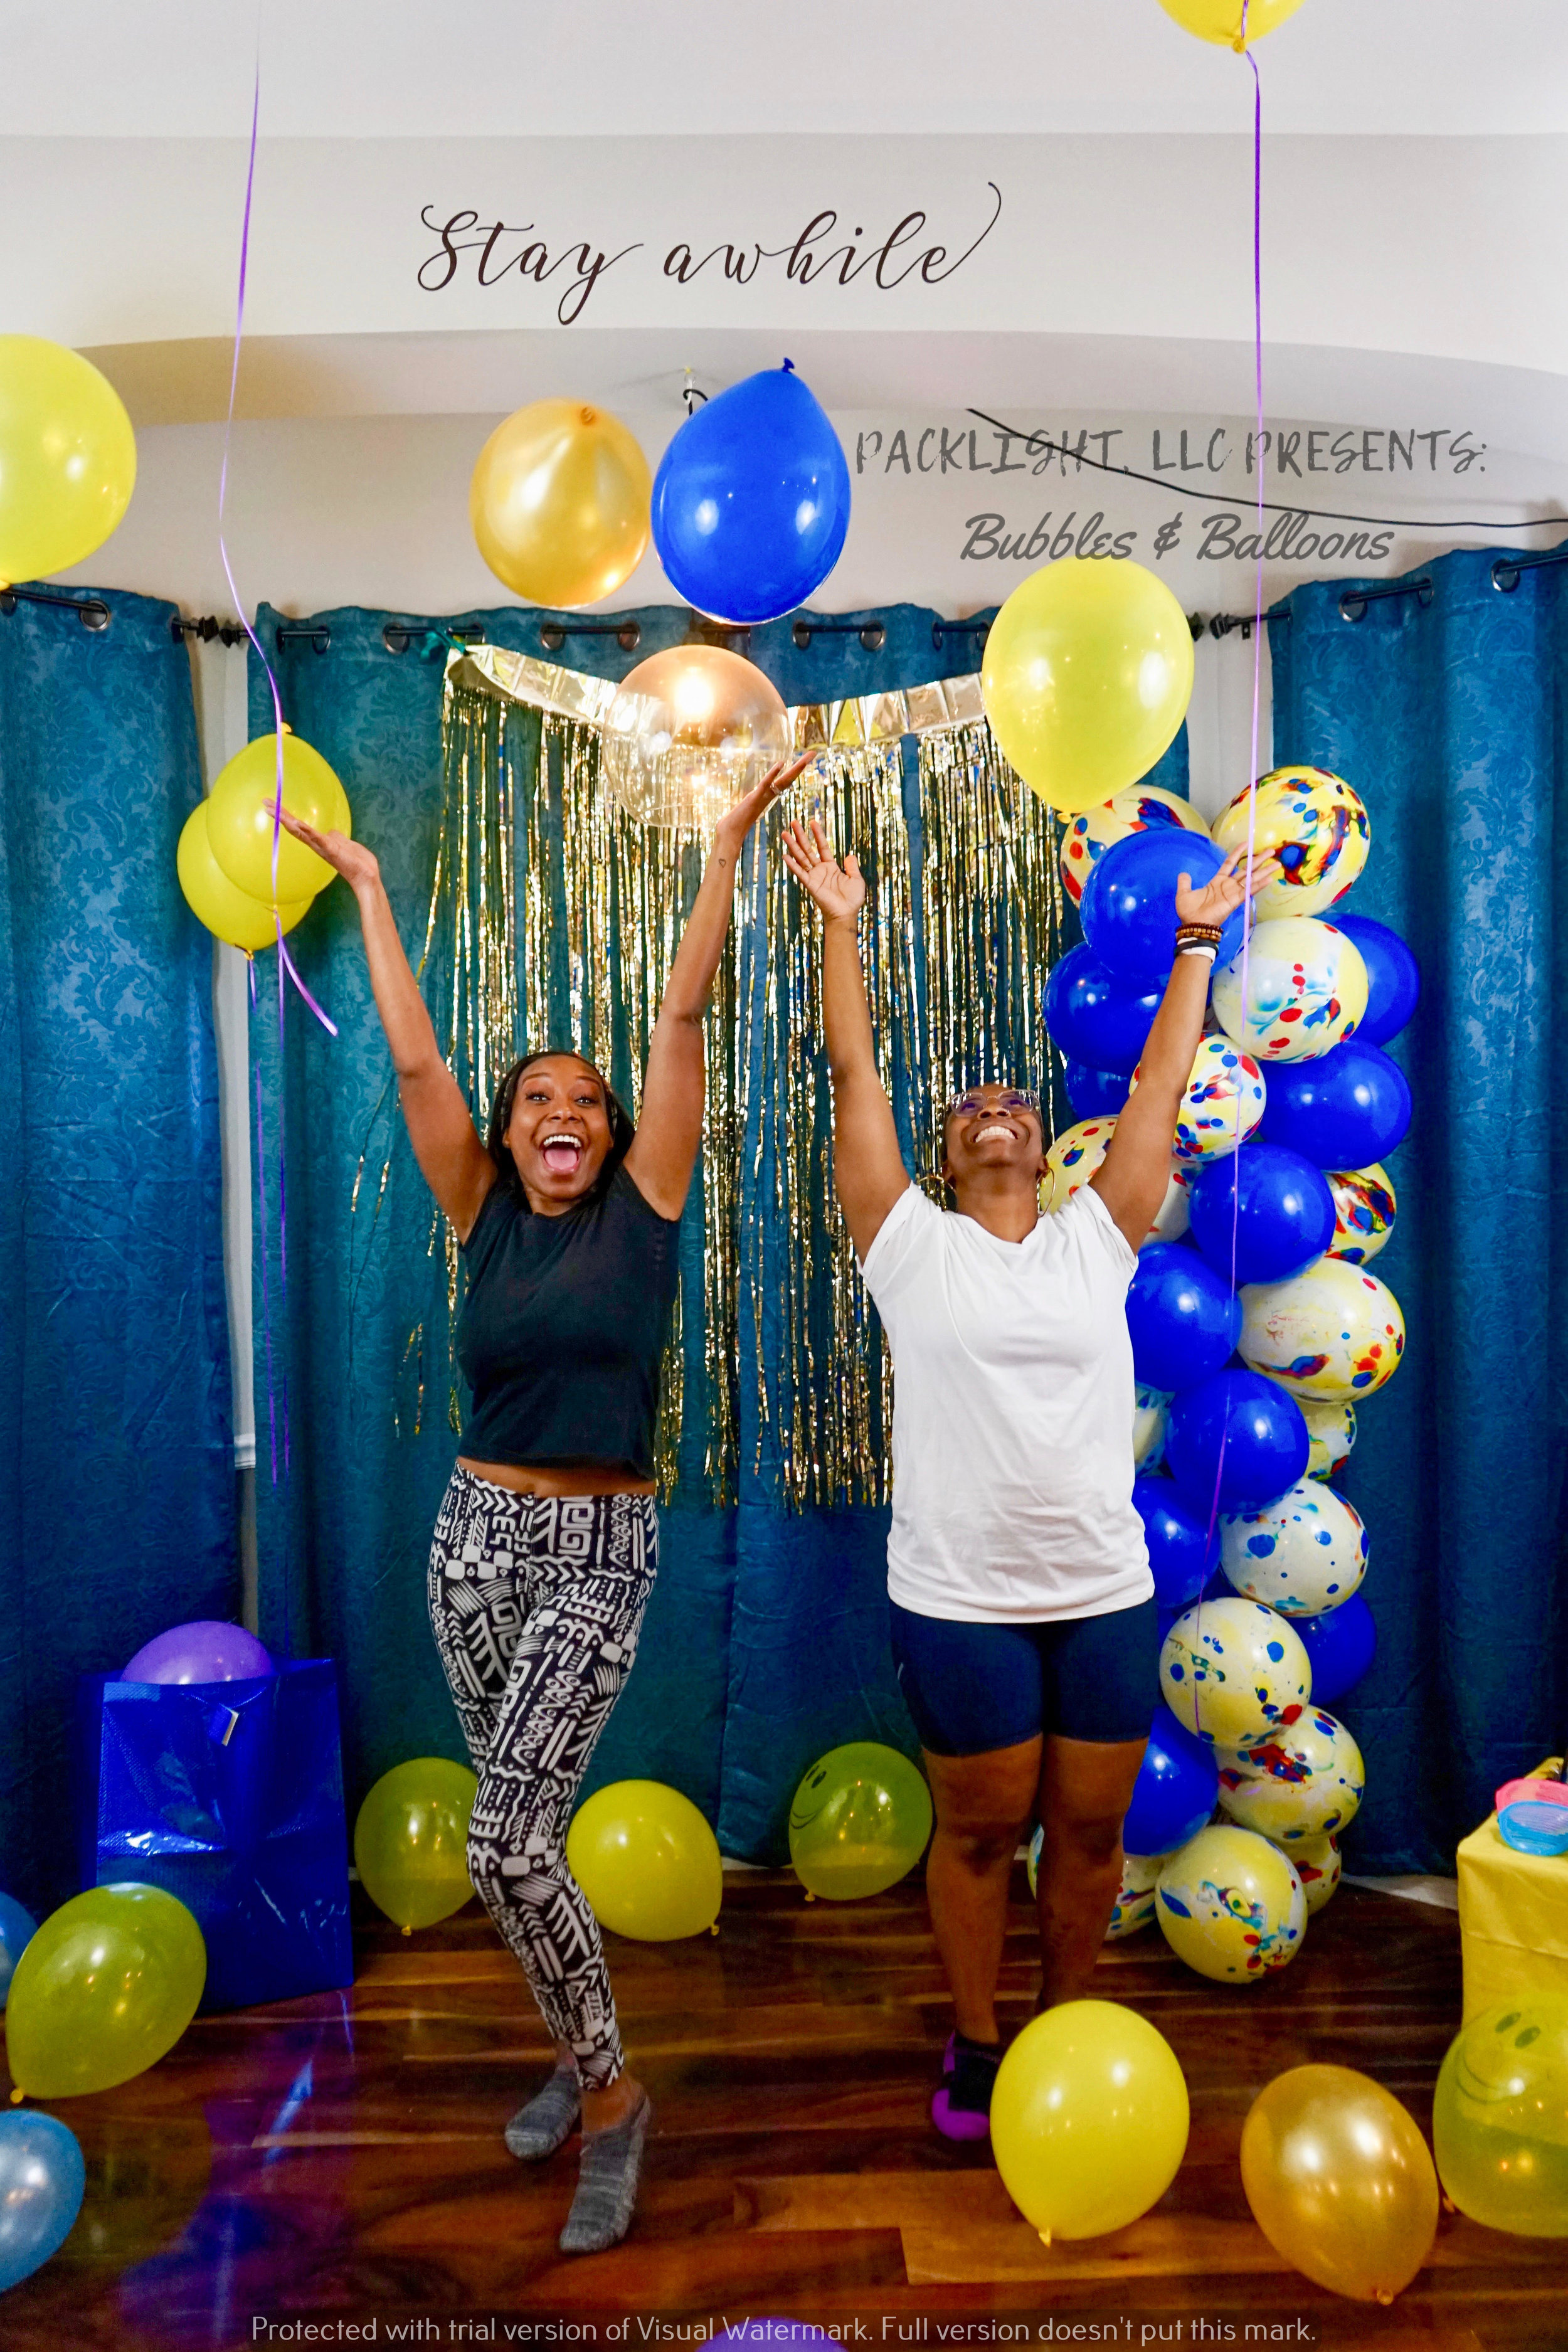 Handmade backdrop and balloon structure.